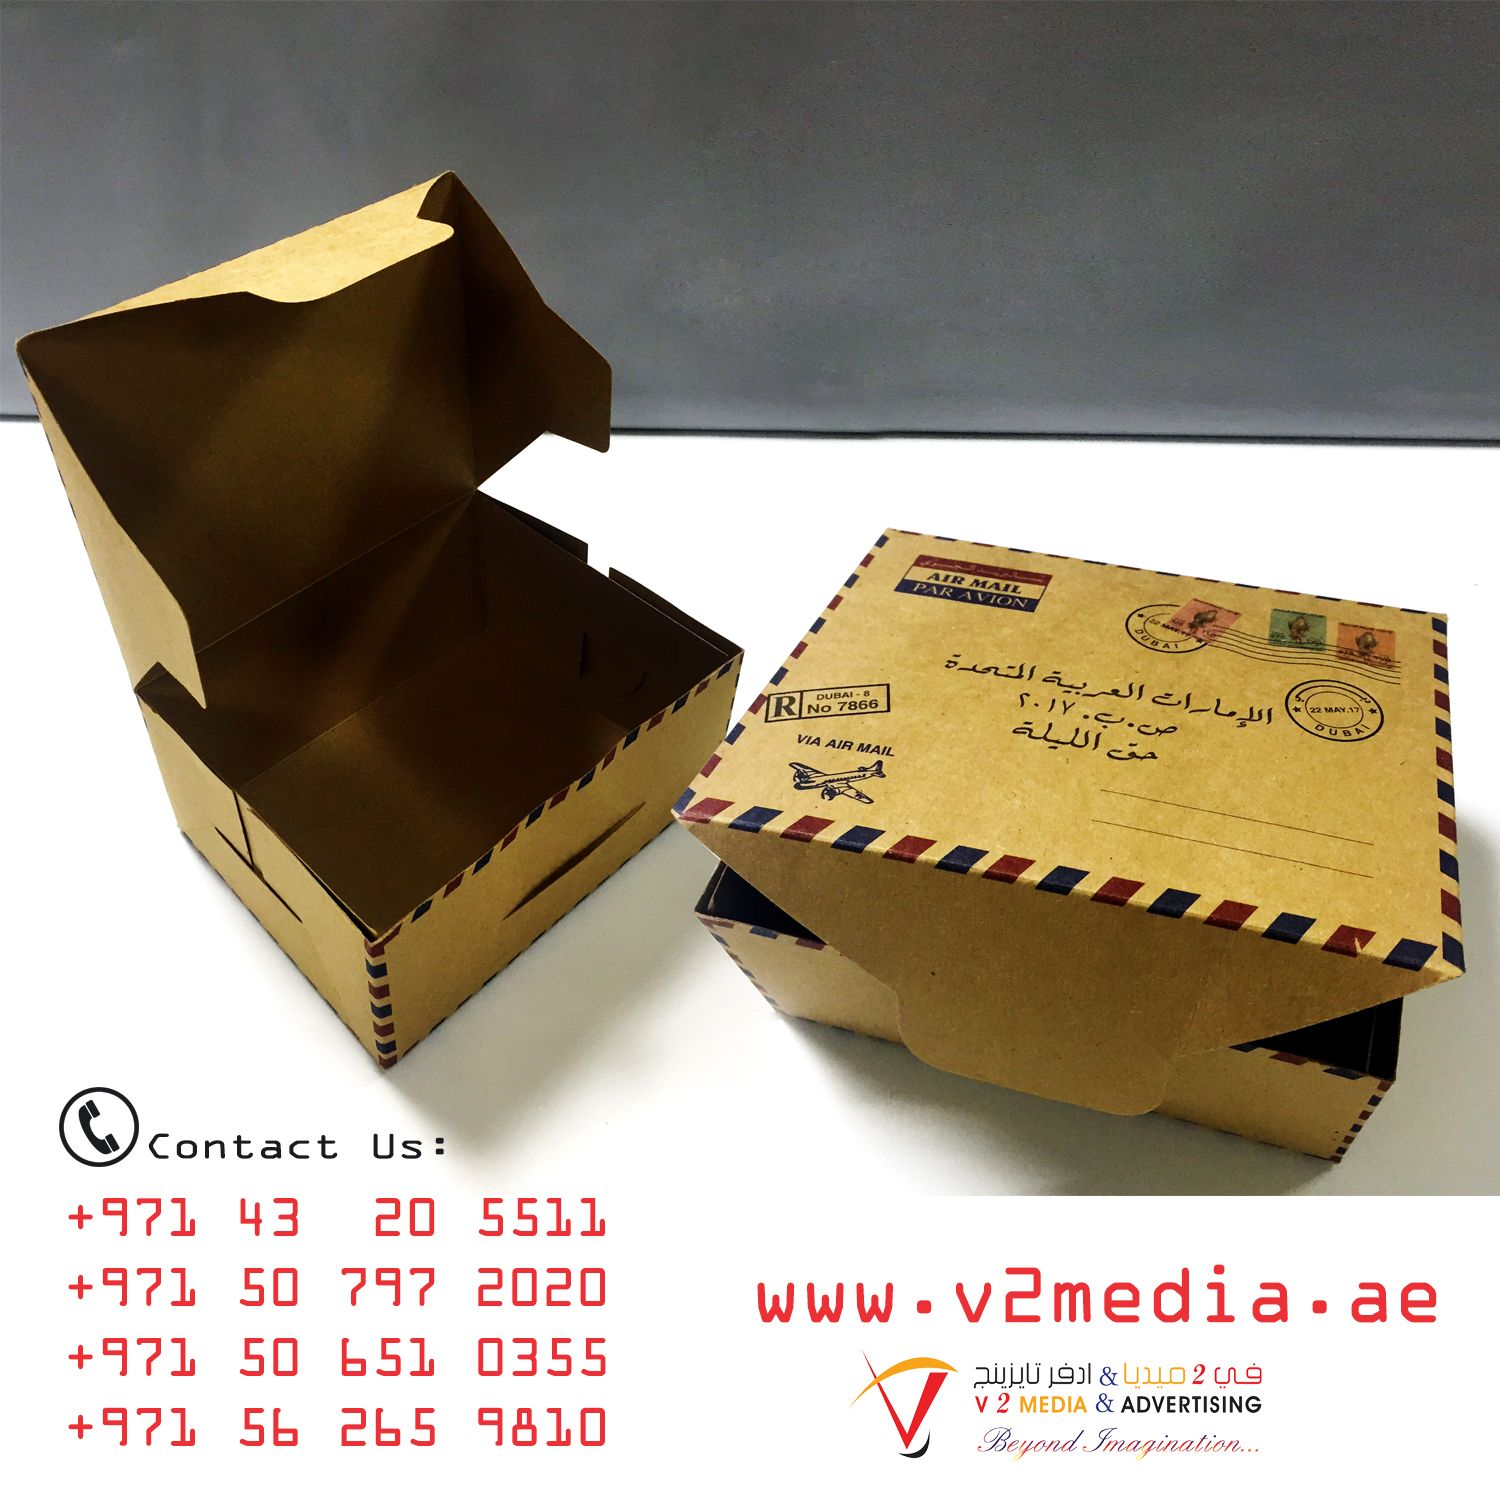 sample box packaging by v2 media services logos design